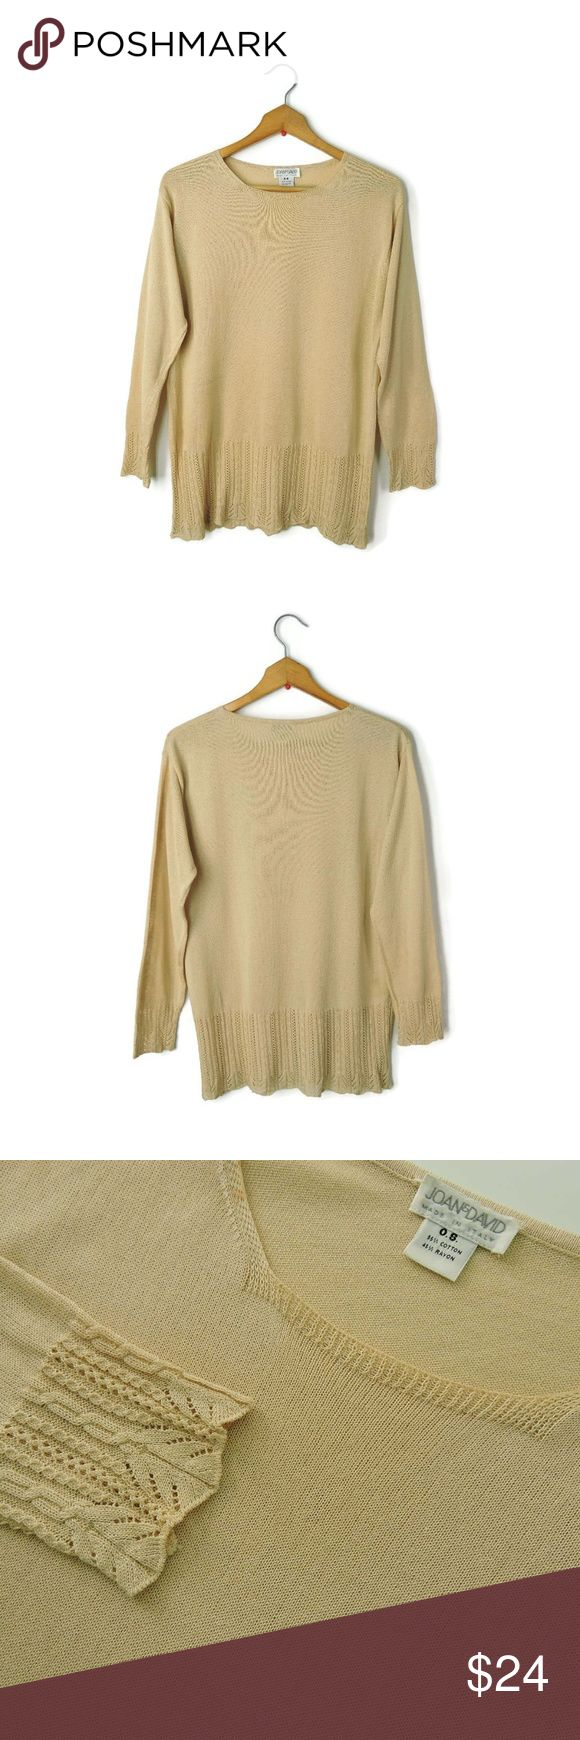 "Joan & David made Italy beige sweater lace cuffs Joan & David elegant ladies sweater. Pull over, long sleeves, lace knit cuffs and hemline, stretchy.   Size - O.S. on the tag, will fit best M Chest -  20"" (armpit to armpit) Length - 24"" (from shoulder) Waist - 18"" Sleeve Length - 21"" Across the bottom/hem - 17"" Material - 55% Cotton, 45% Rayon (Dry Clean Only)   Condition: Previously worn, with only very slight wash wear Made in Italy Joan & David Sweaters Crew & Scoop Necks"